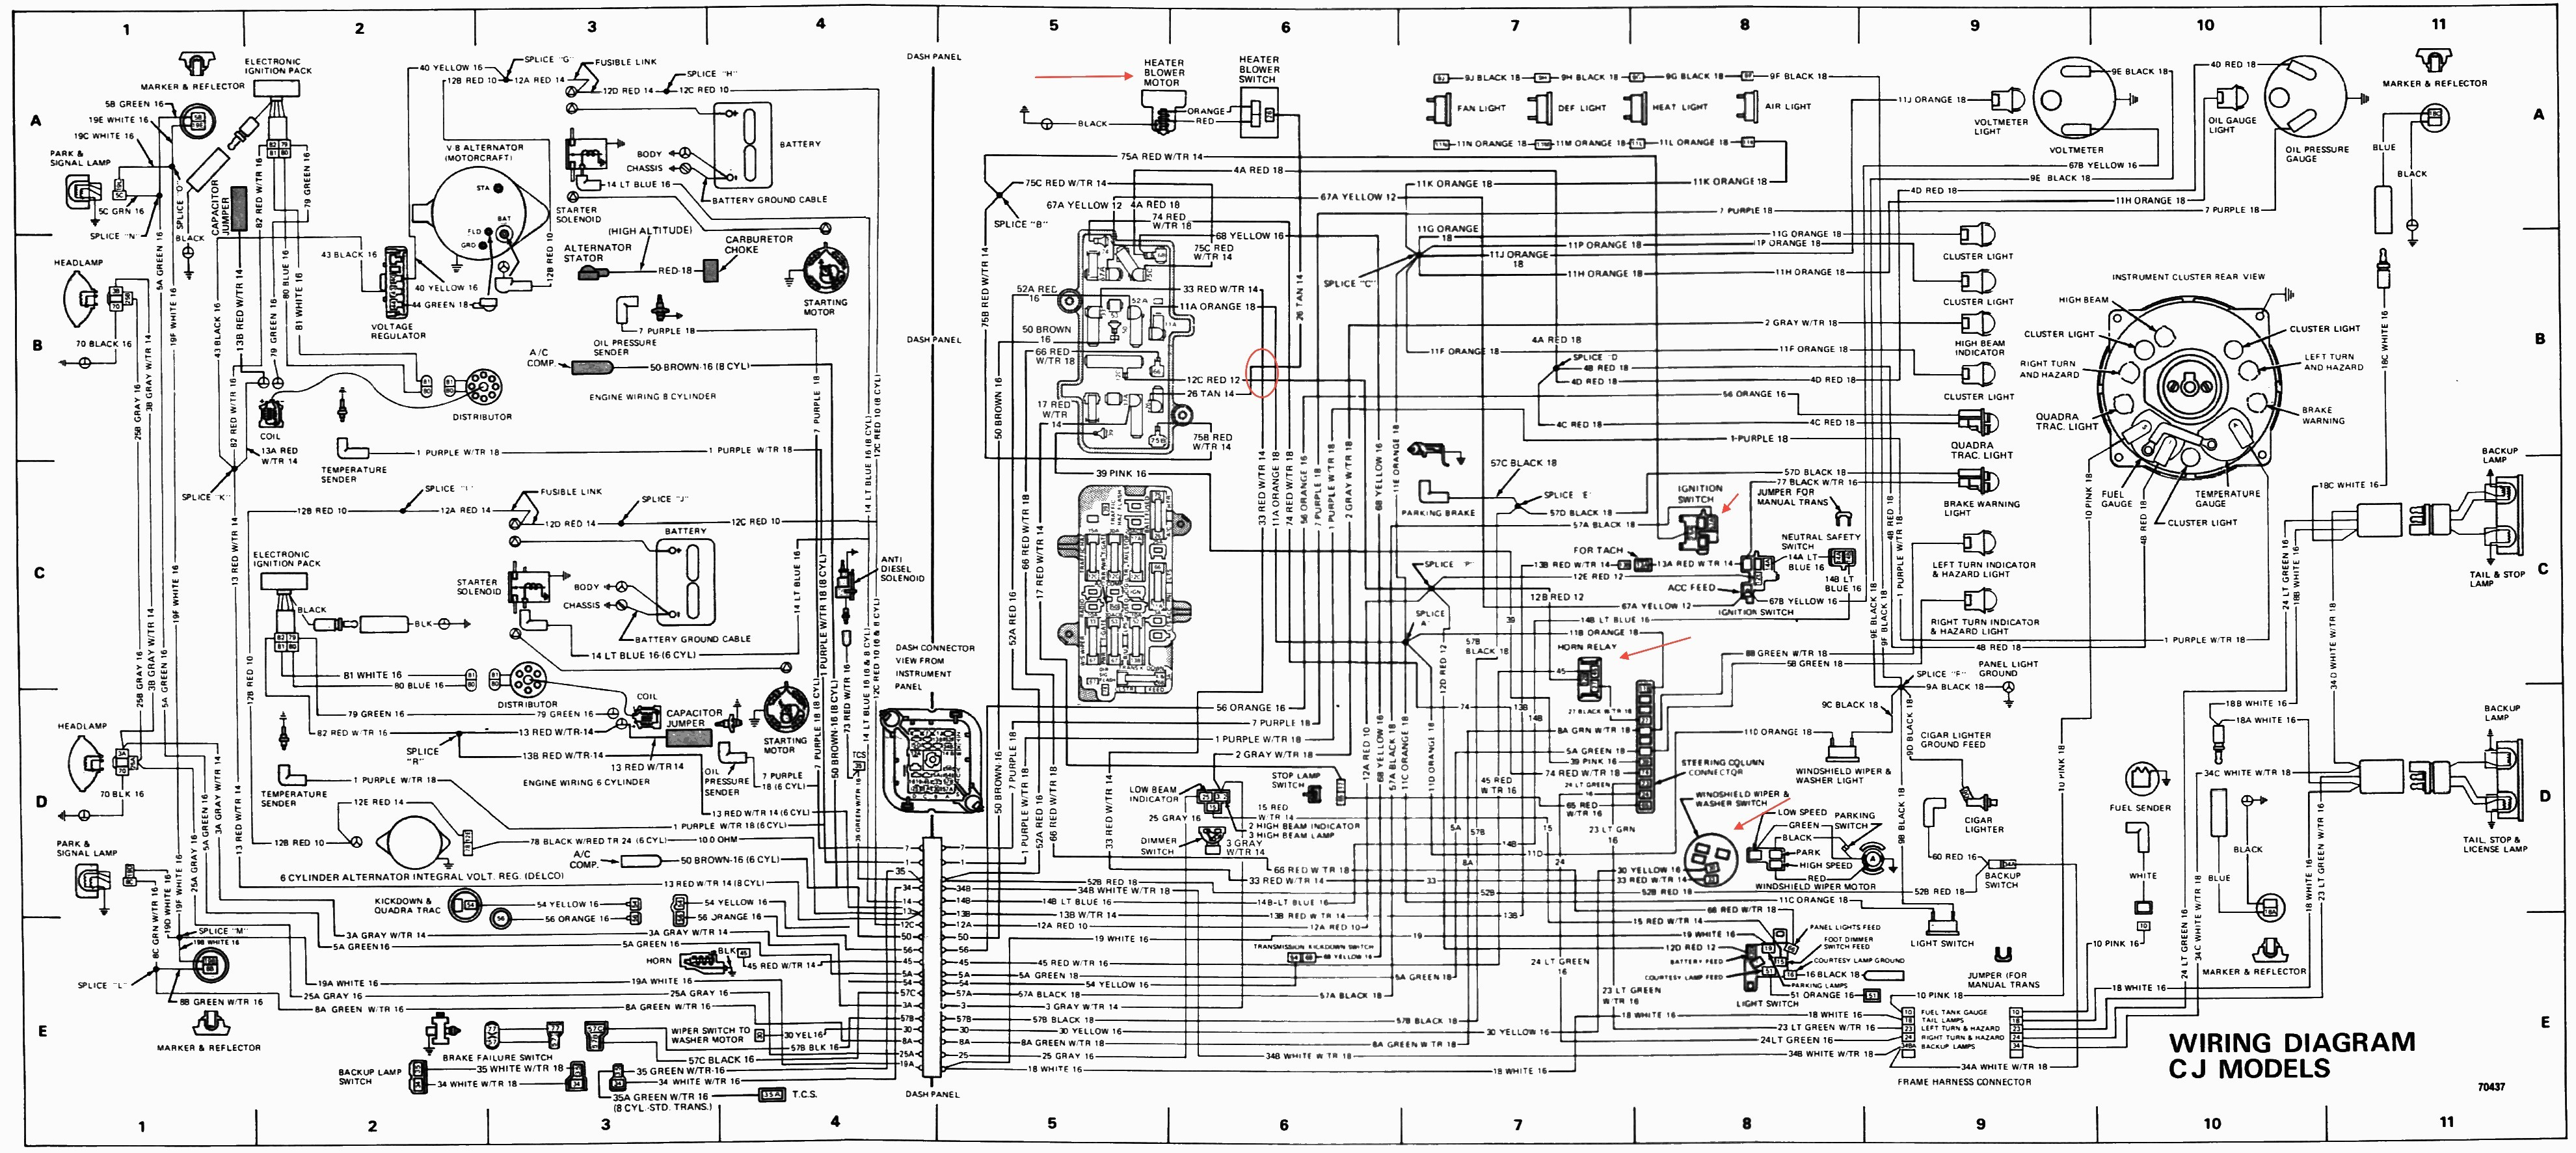 ez wiring 304 diagram basic wiring diagram \u2022 club car 36v batteries diagram ez wiring 304 diagram schematics wiring diagrams u2022 rh seniorlivinguniversity co ez car wiring diagram ez